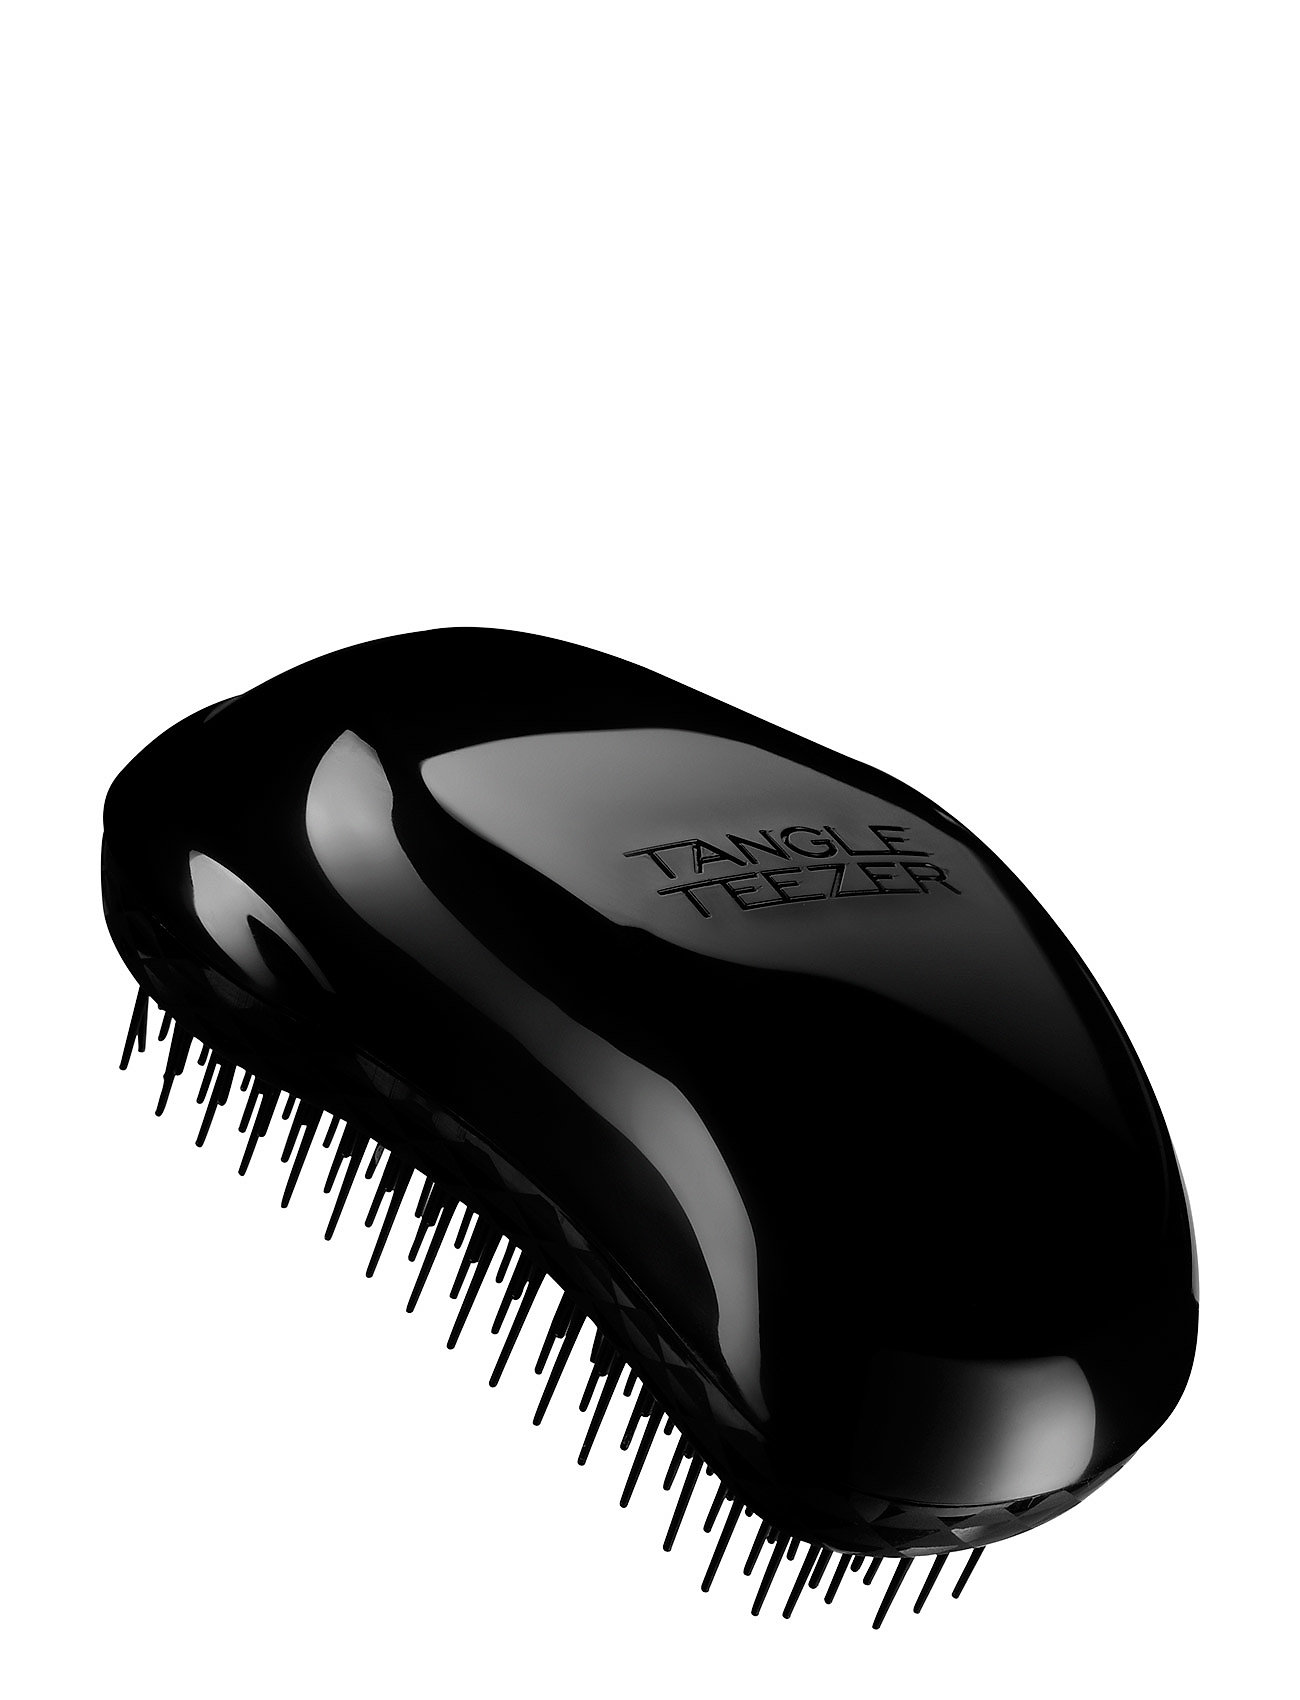 Tangle Teezer Tangle Teezer Original Panther Black - PANTHER BLACK